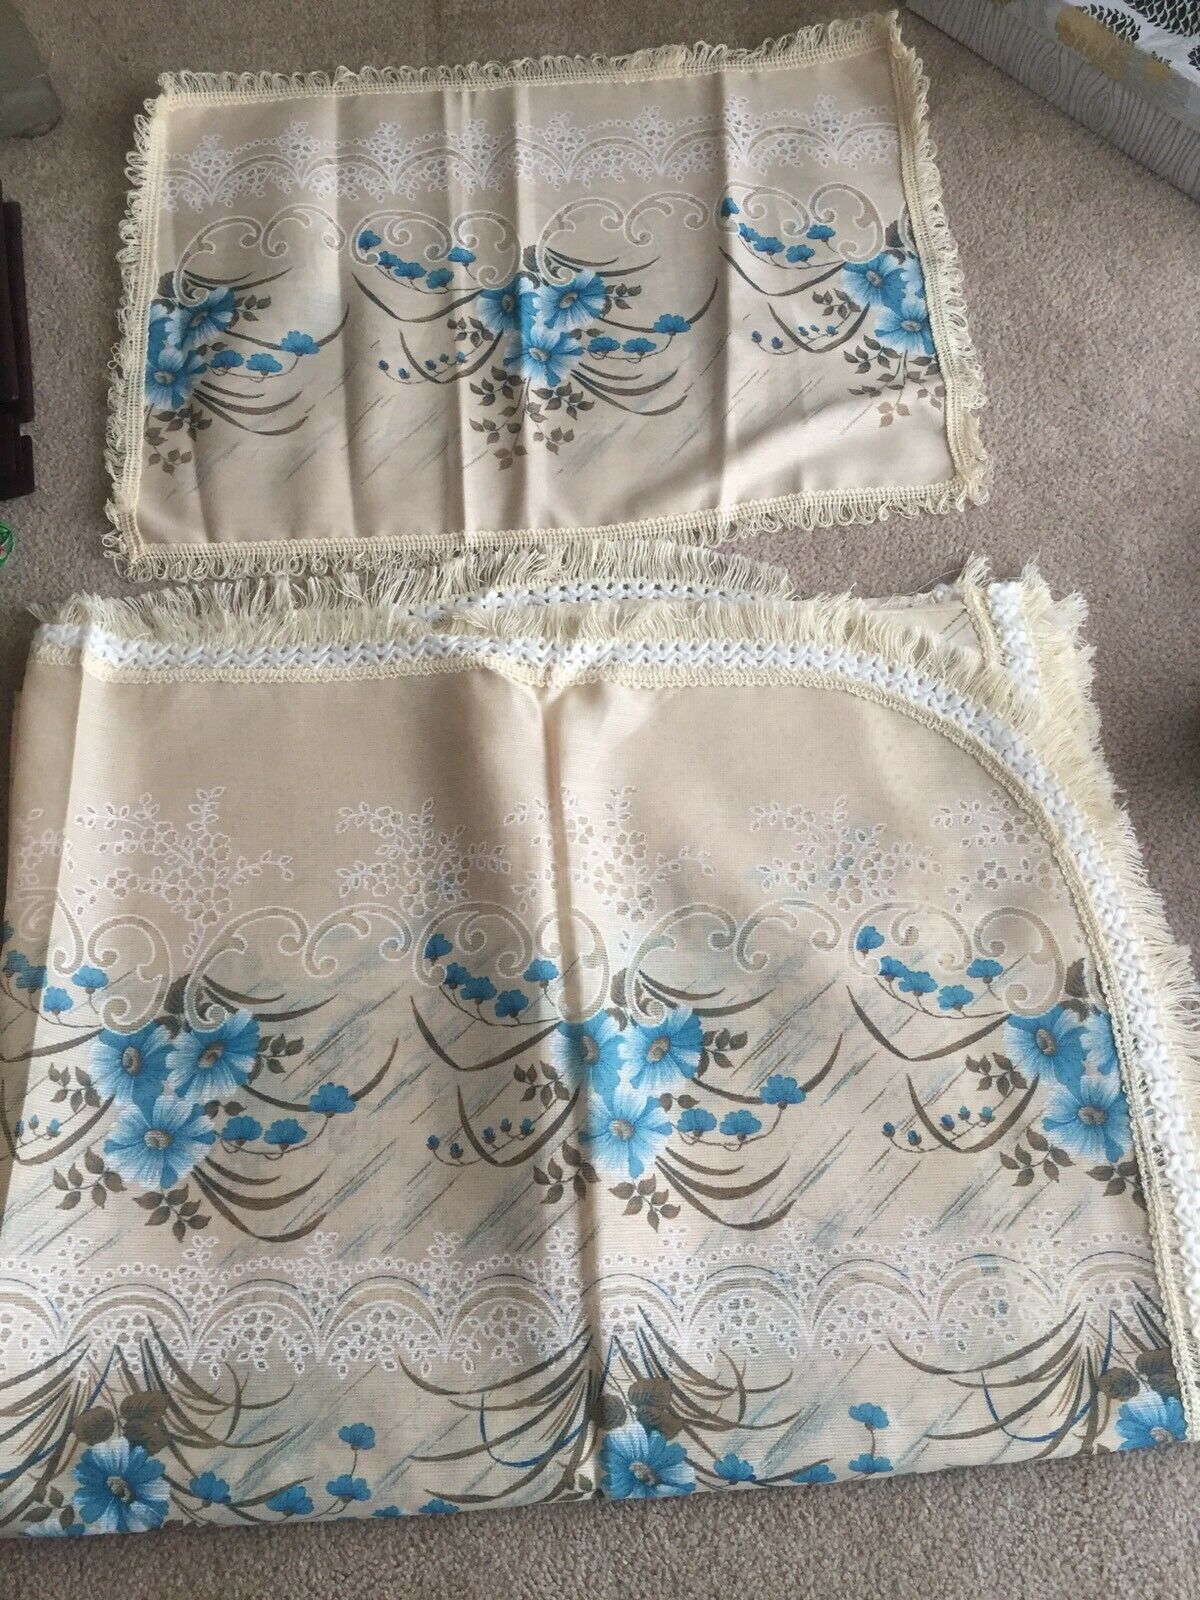 Dolz Vintage 1980s ANA Pillow Case Bed Spread blueeee Flower Morning Glory